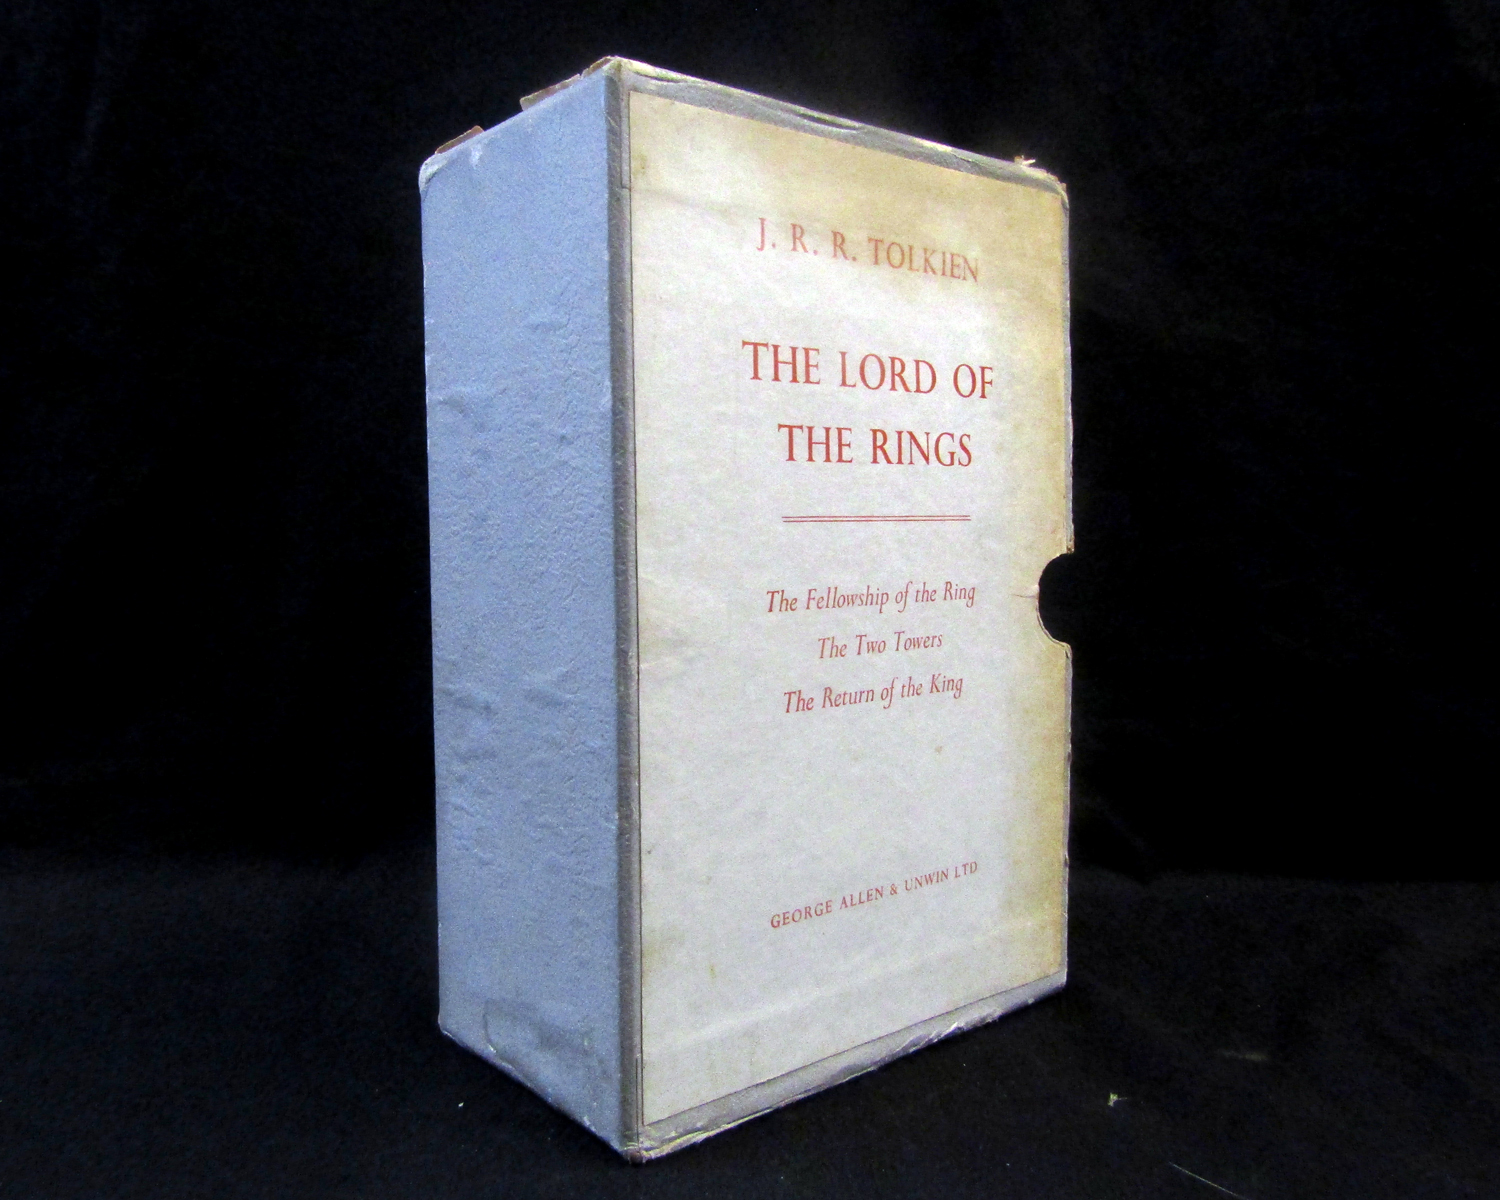 J R R TOLKIEN: THE LORD OF THE RINGS - THE FELLOWSHIP OF THE RING- THE TWO TOWERS - THE RETURN OF - Image 5 of 7